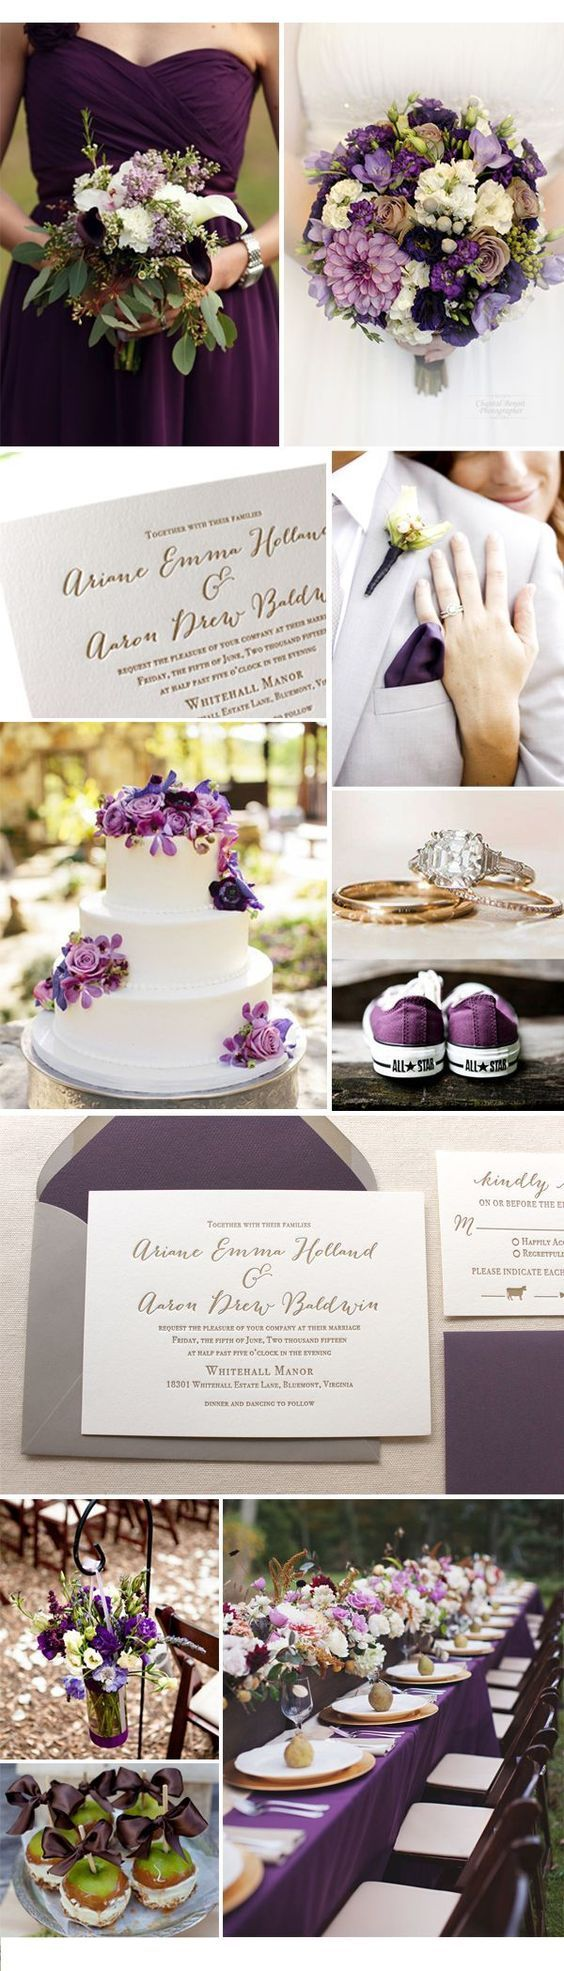 Purple wedding theme, purple and silver: | Themes For Your Wedding ...